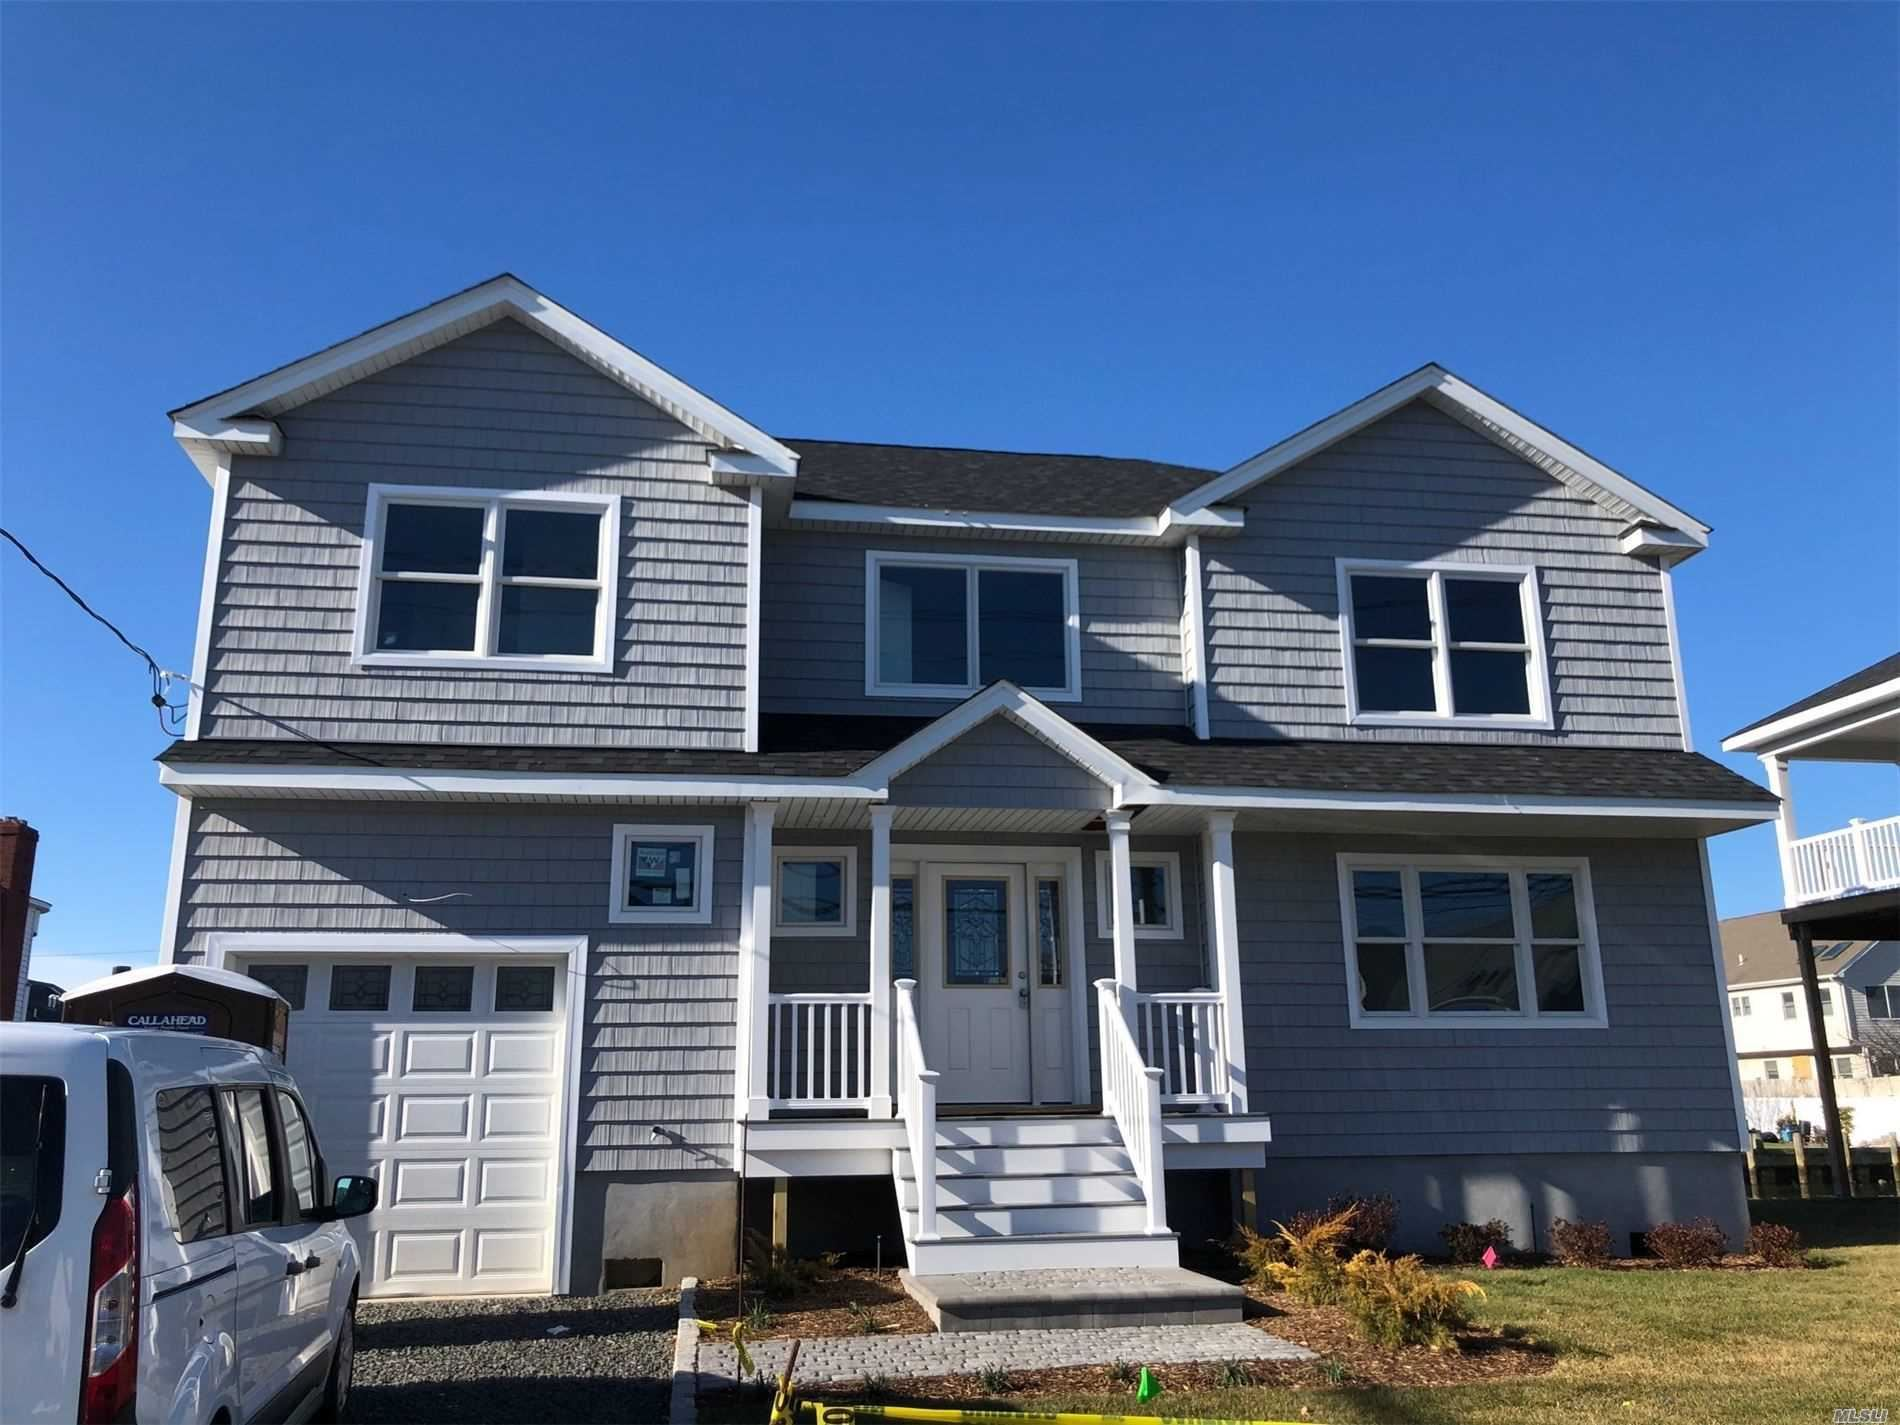 2548 Ocean Avenue, Seaford, NY 11783 - MLS#: 3200039